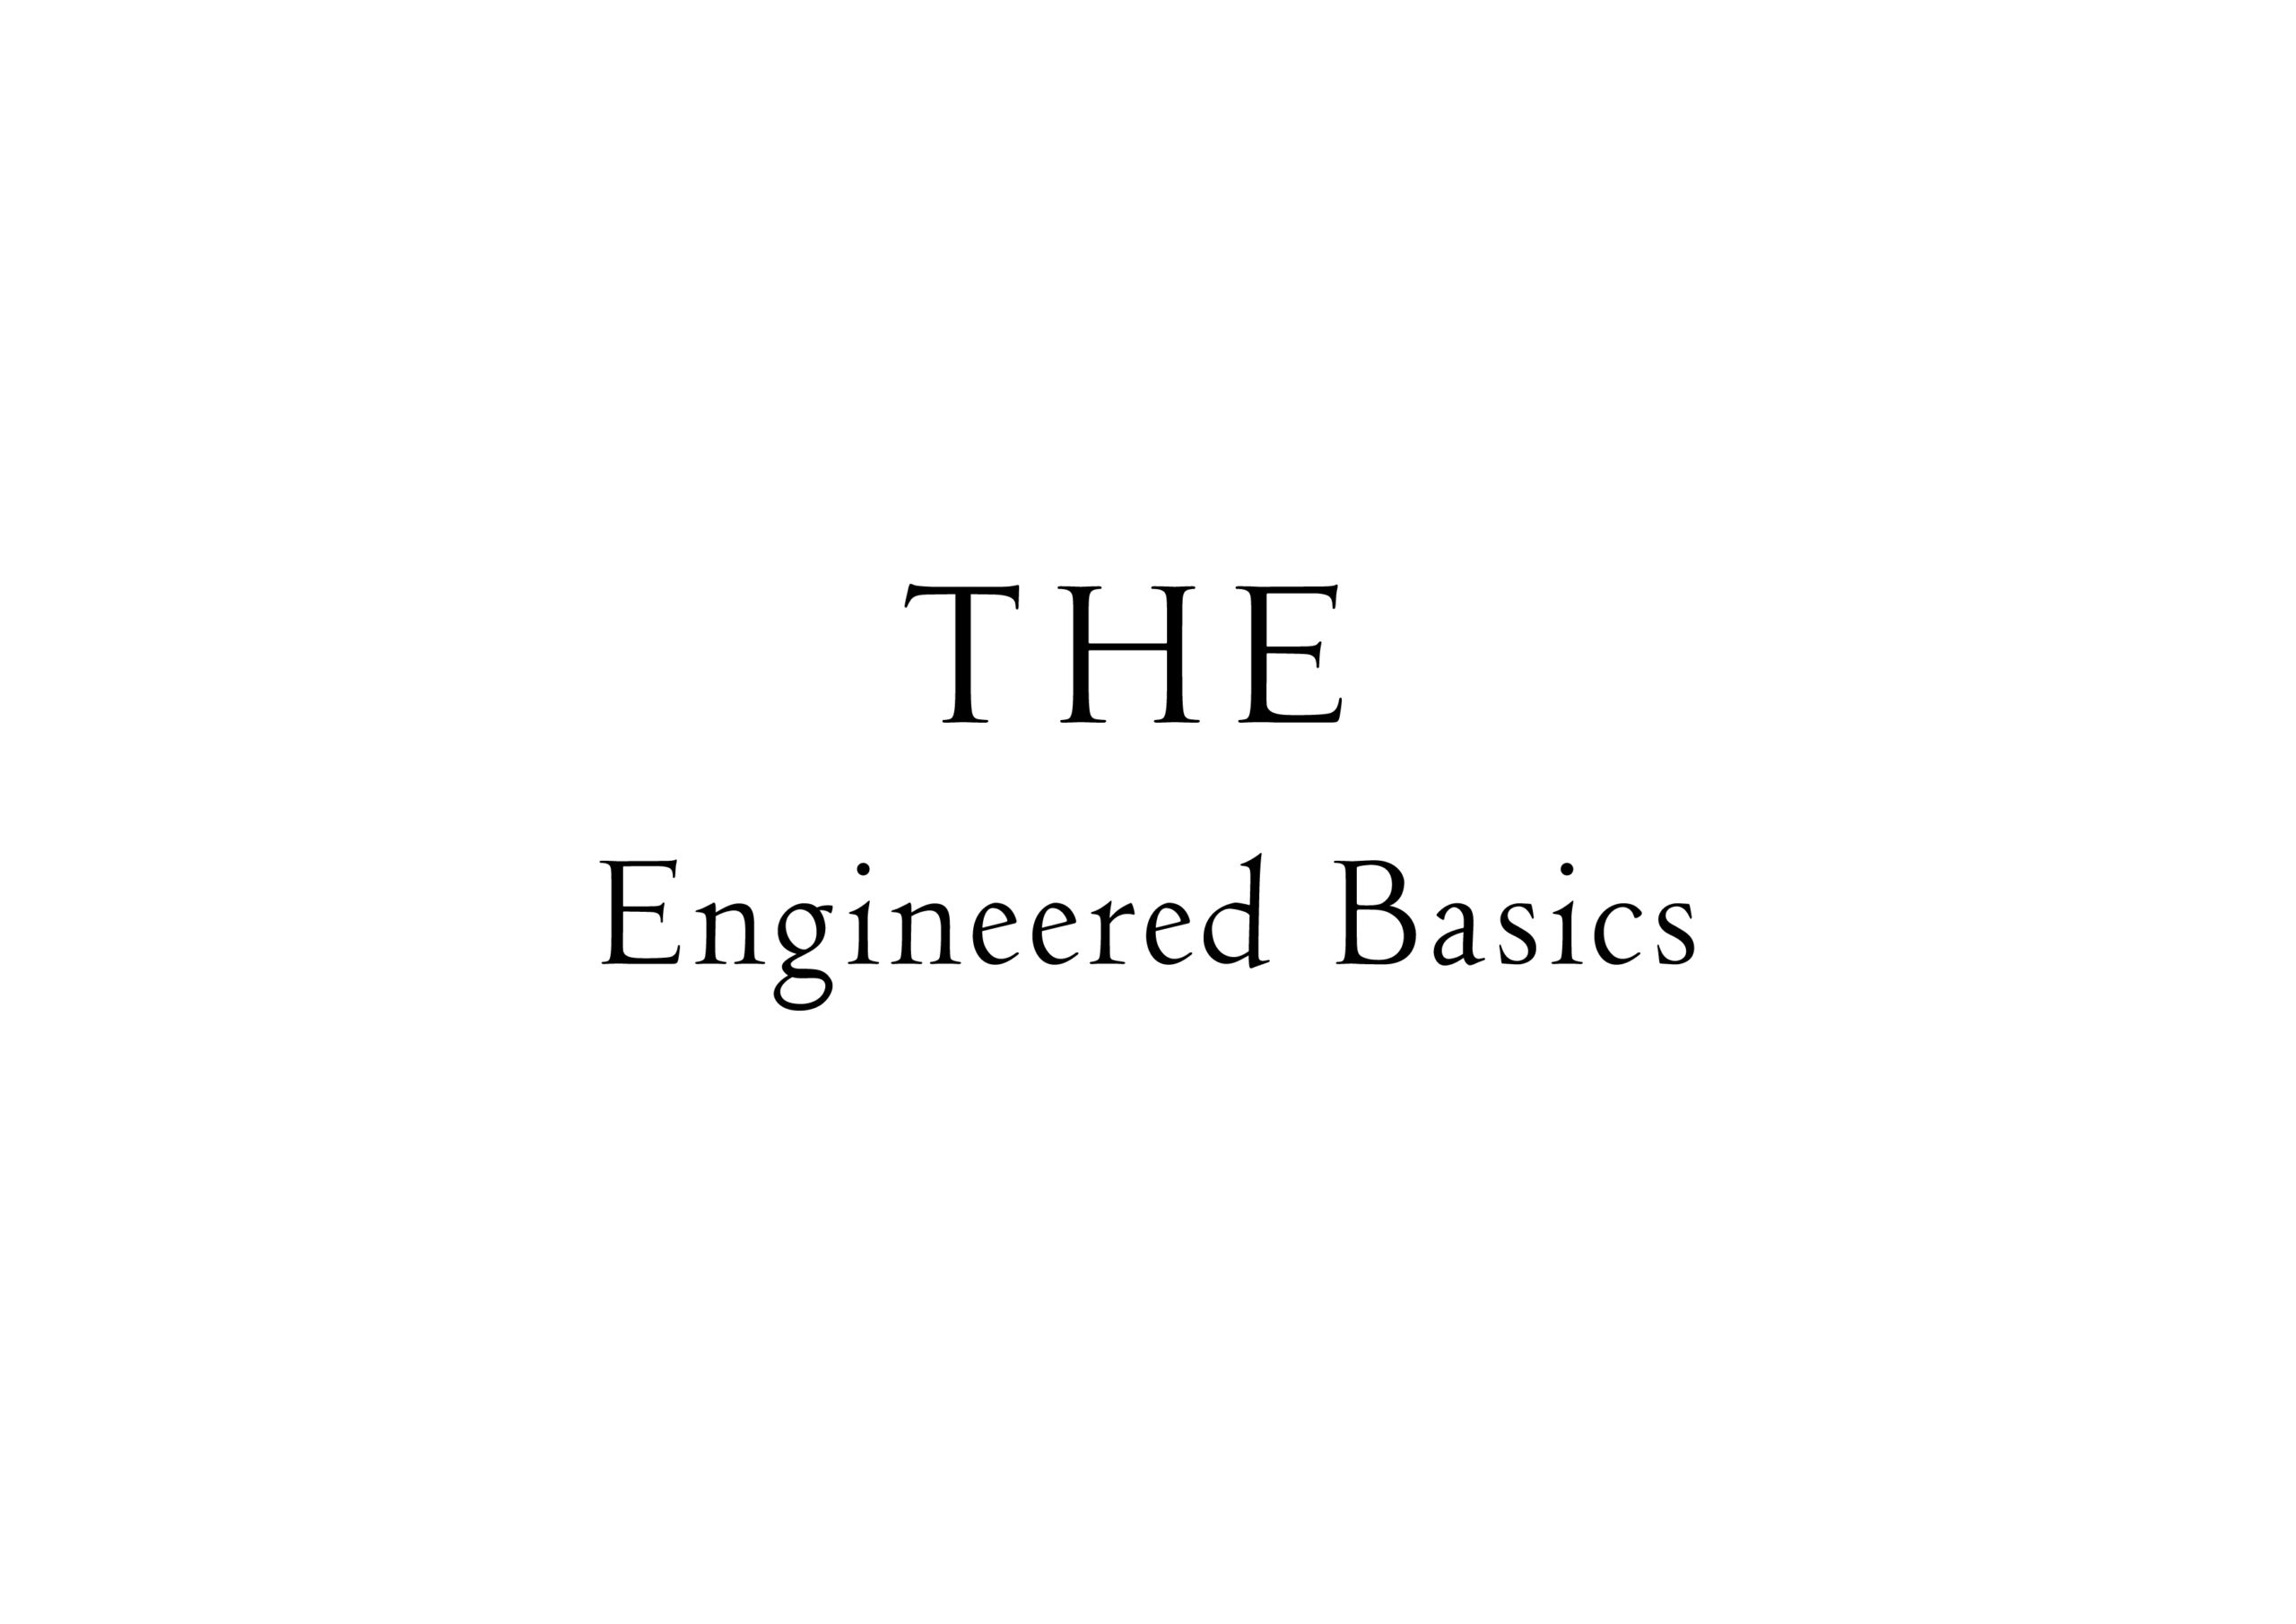 THE Engineered Basics